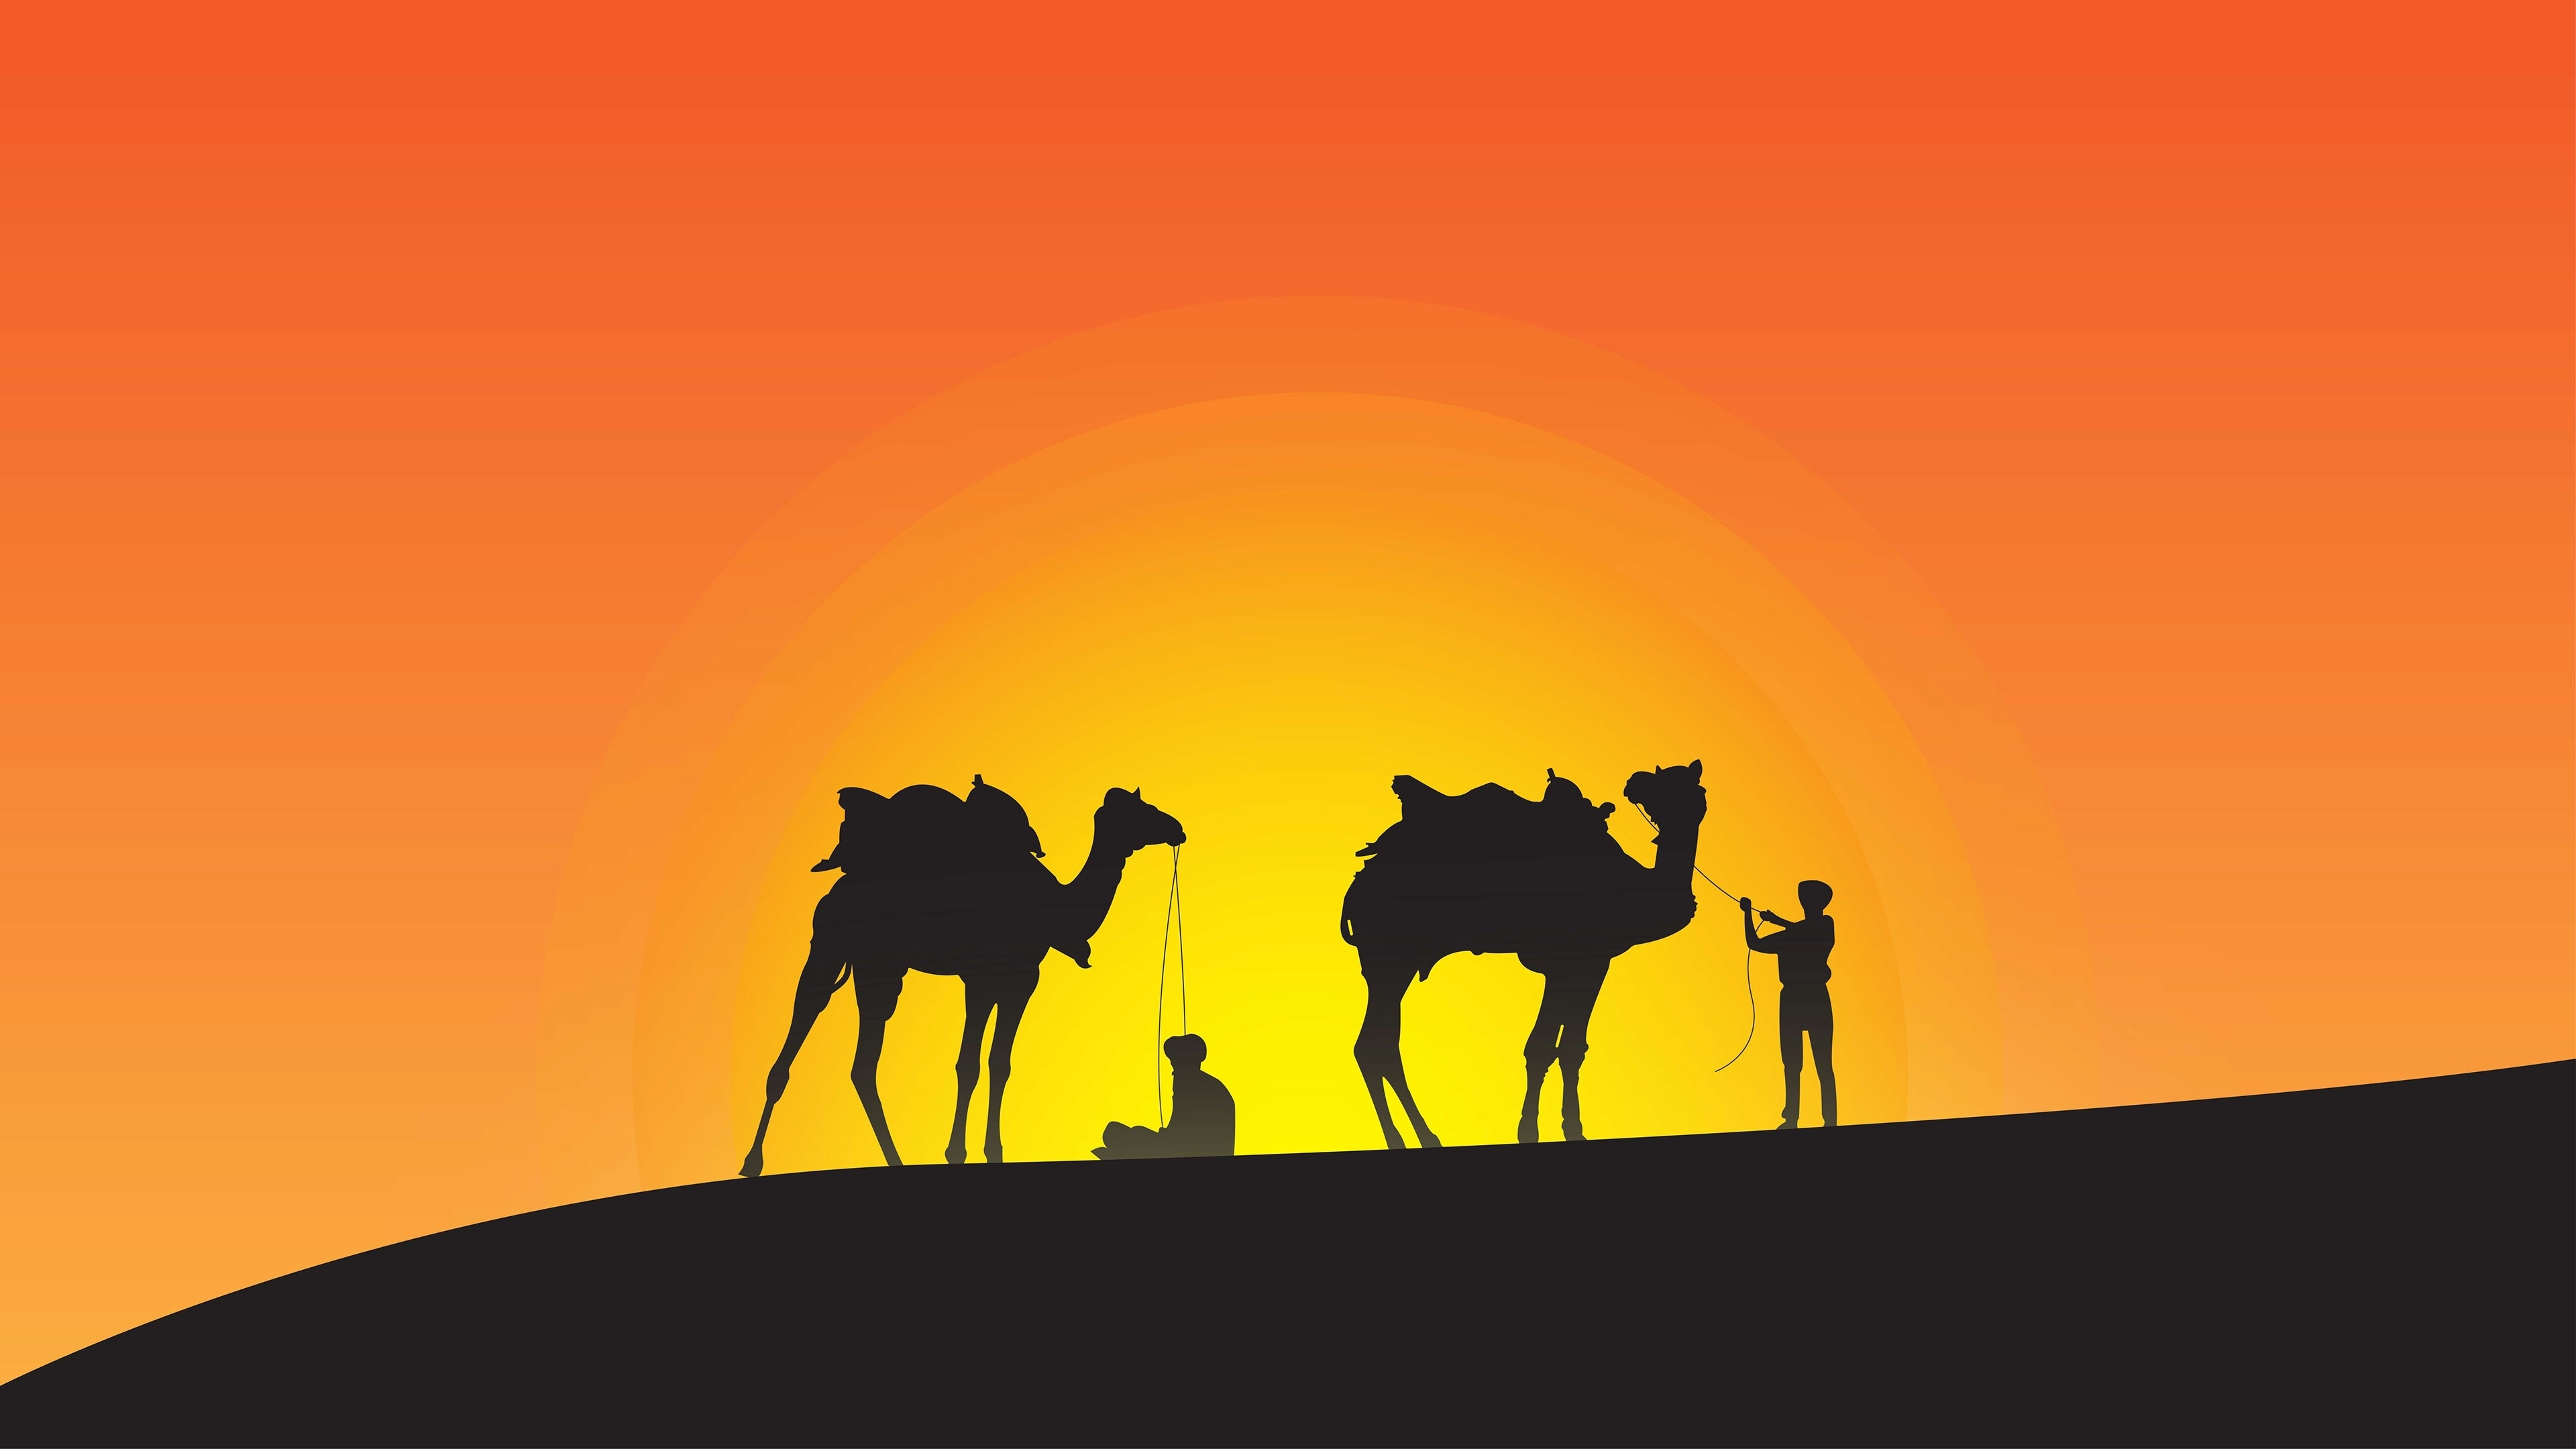 Download 3840x2400 Wallpaper Camels Sunset Silhouette